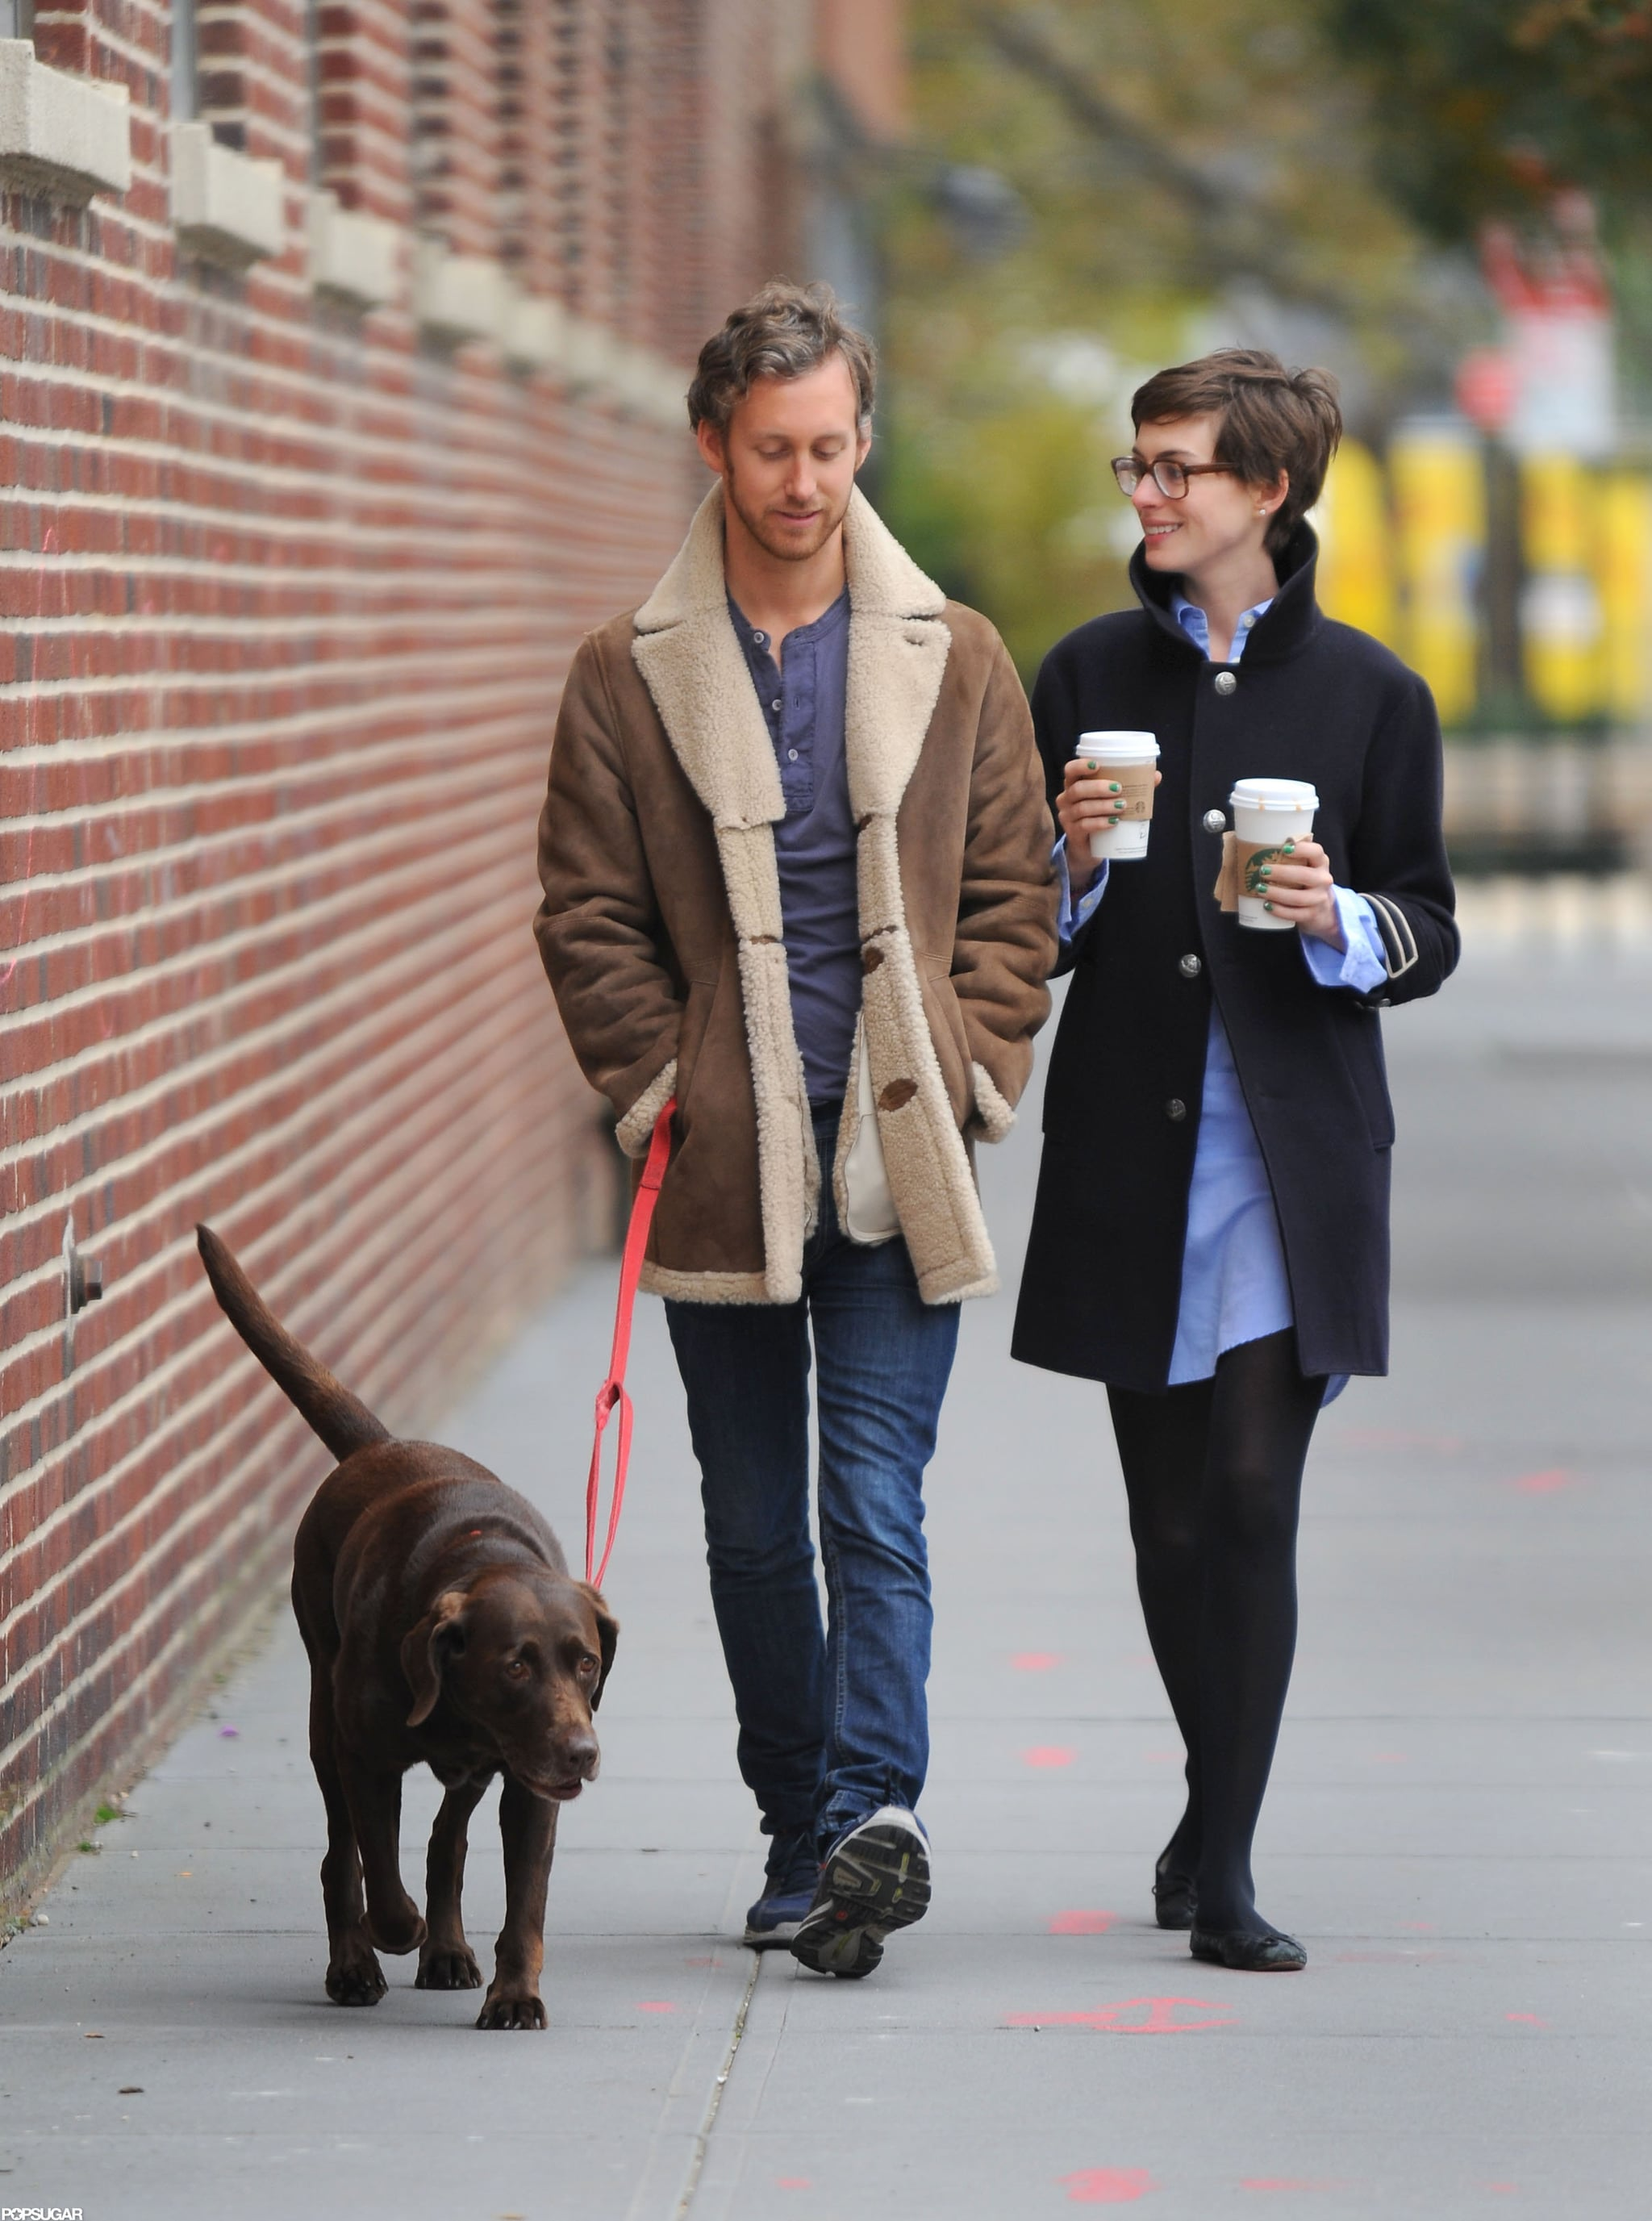 Anne Hathaway And Husband Adam Shulman Walked Their Dog Together